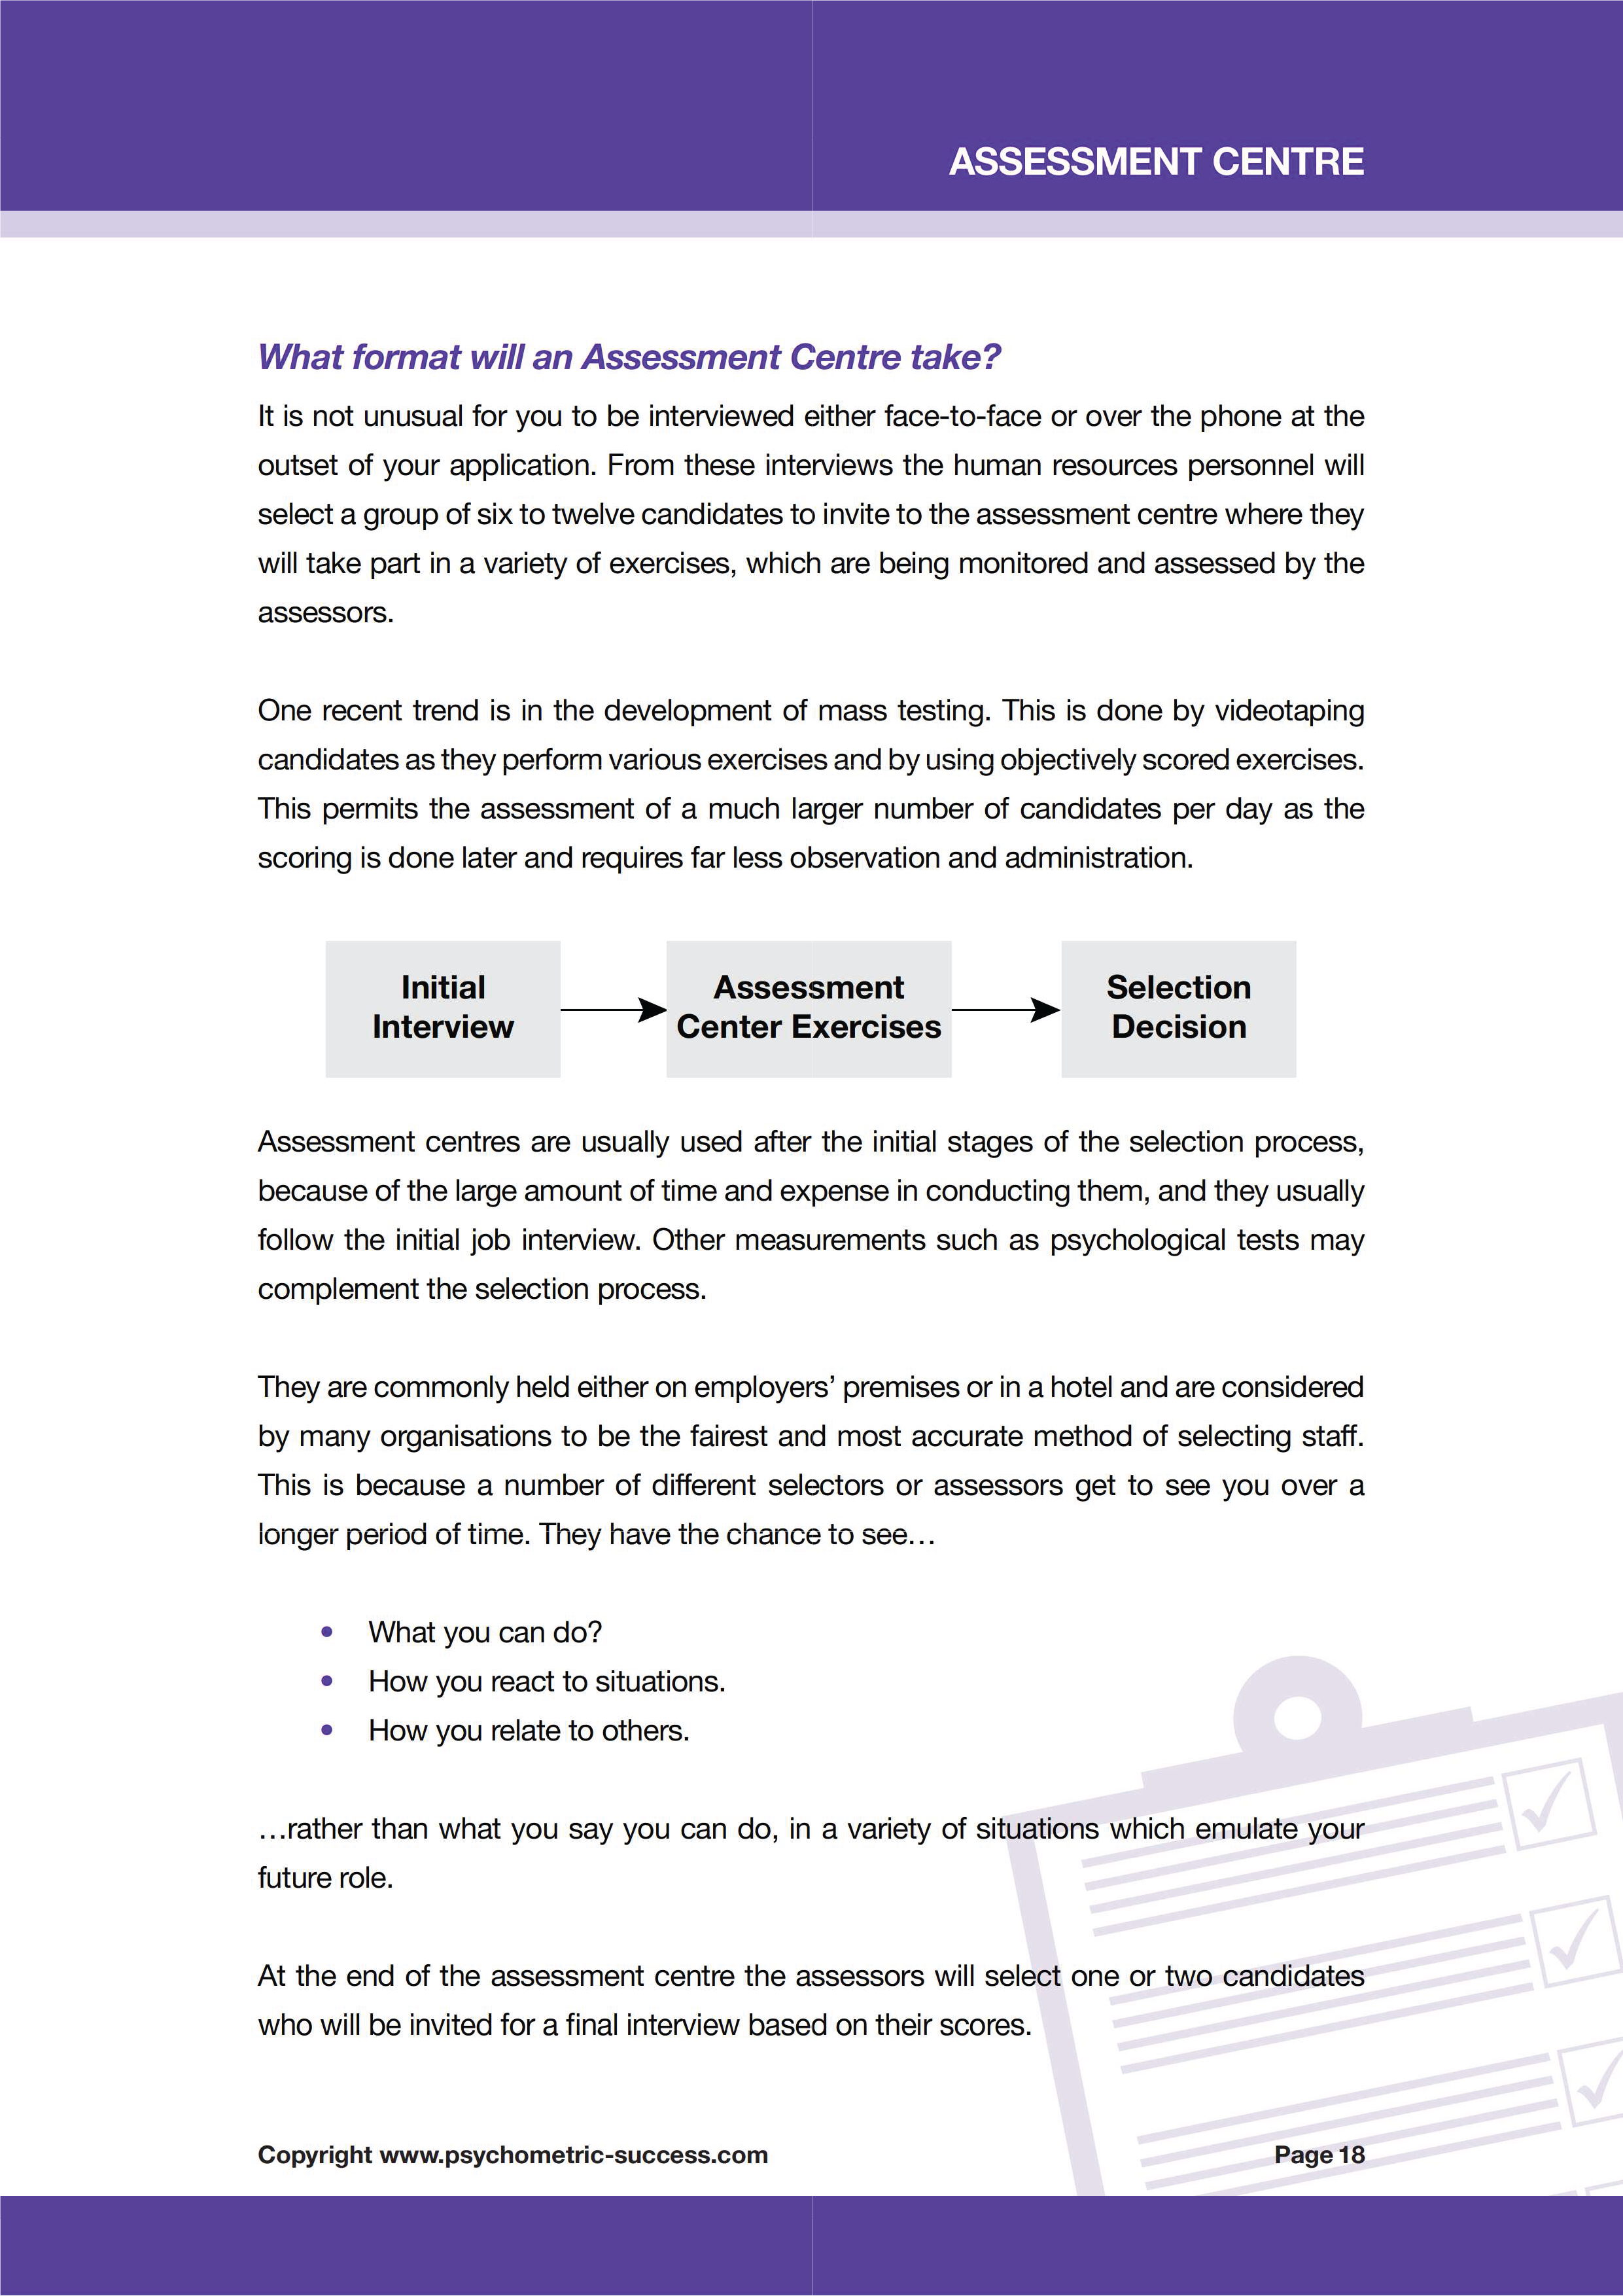 Assessment Centre eBook — Psychometric Tests